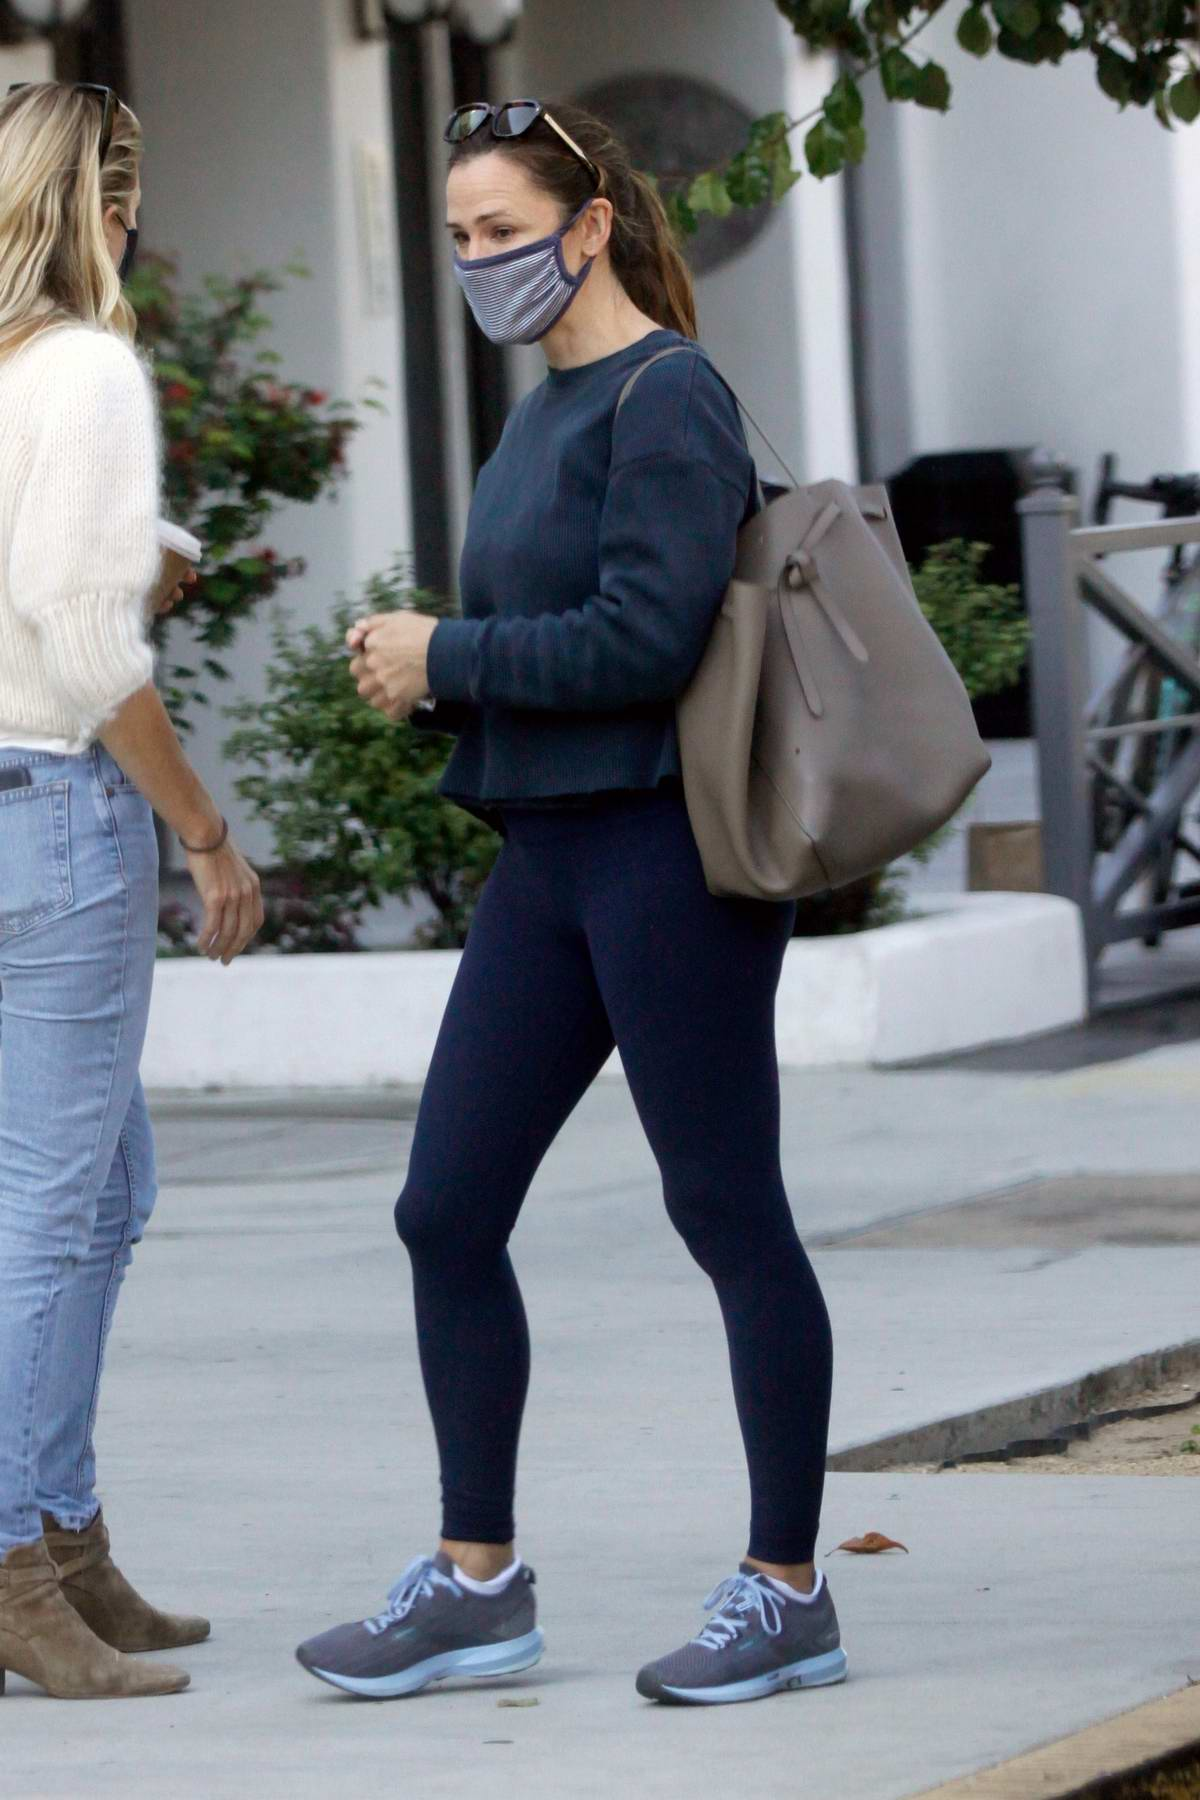 Jennifer Garner meets a friend for a morning cup of coffee in Los Angeles